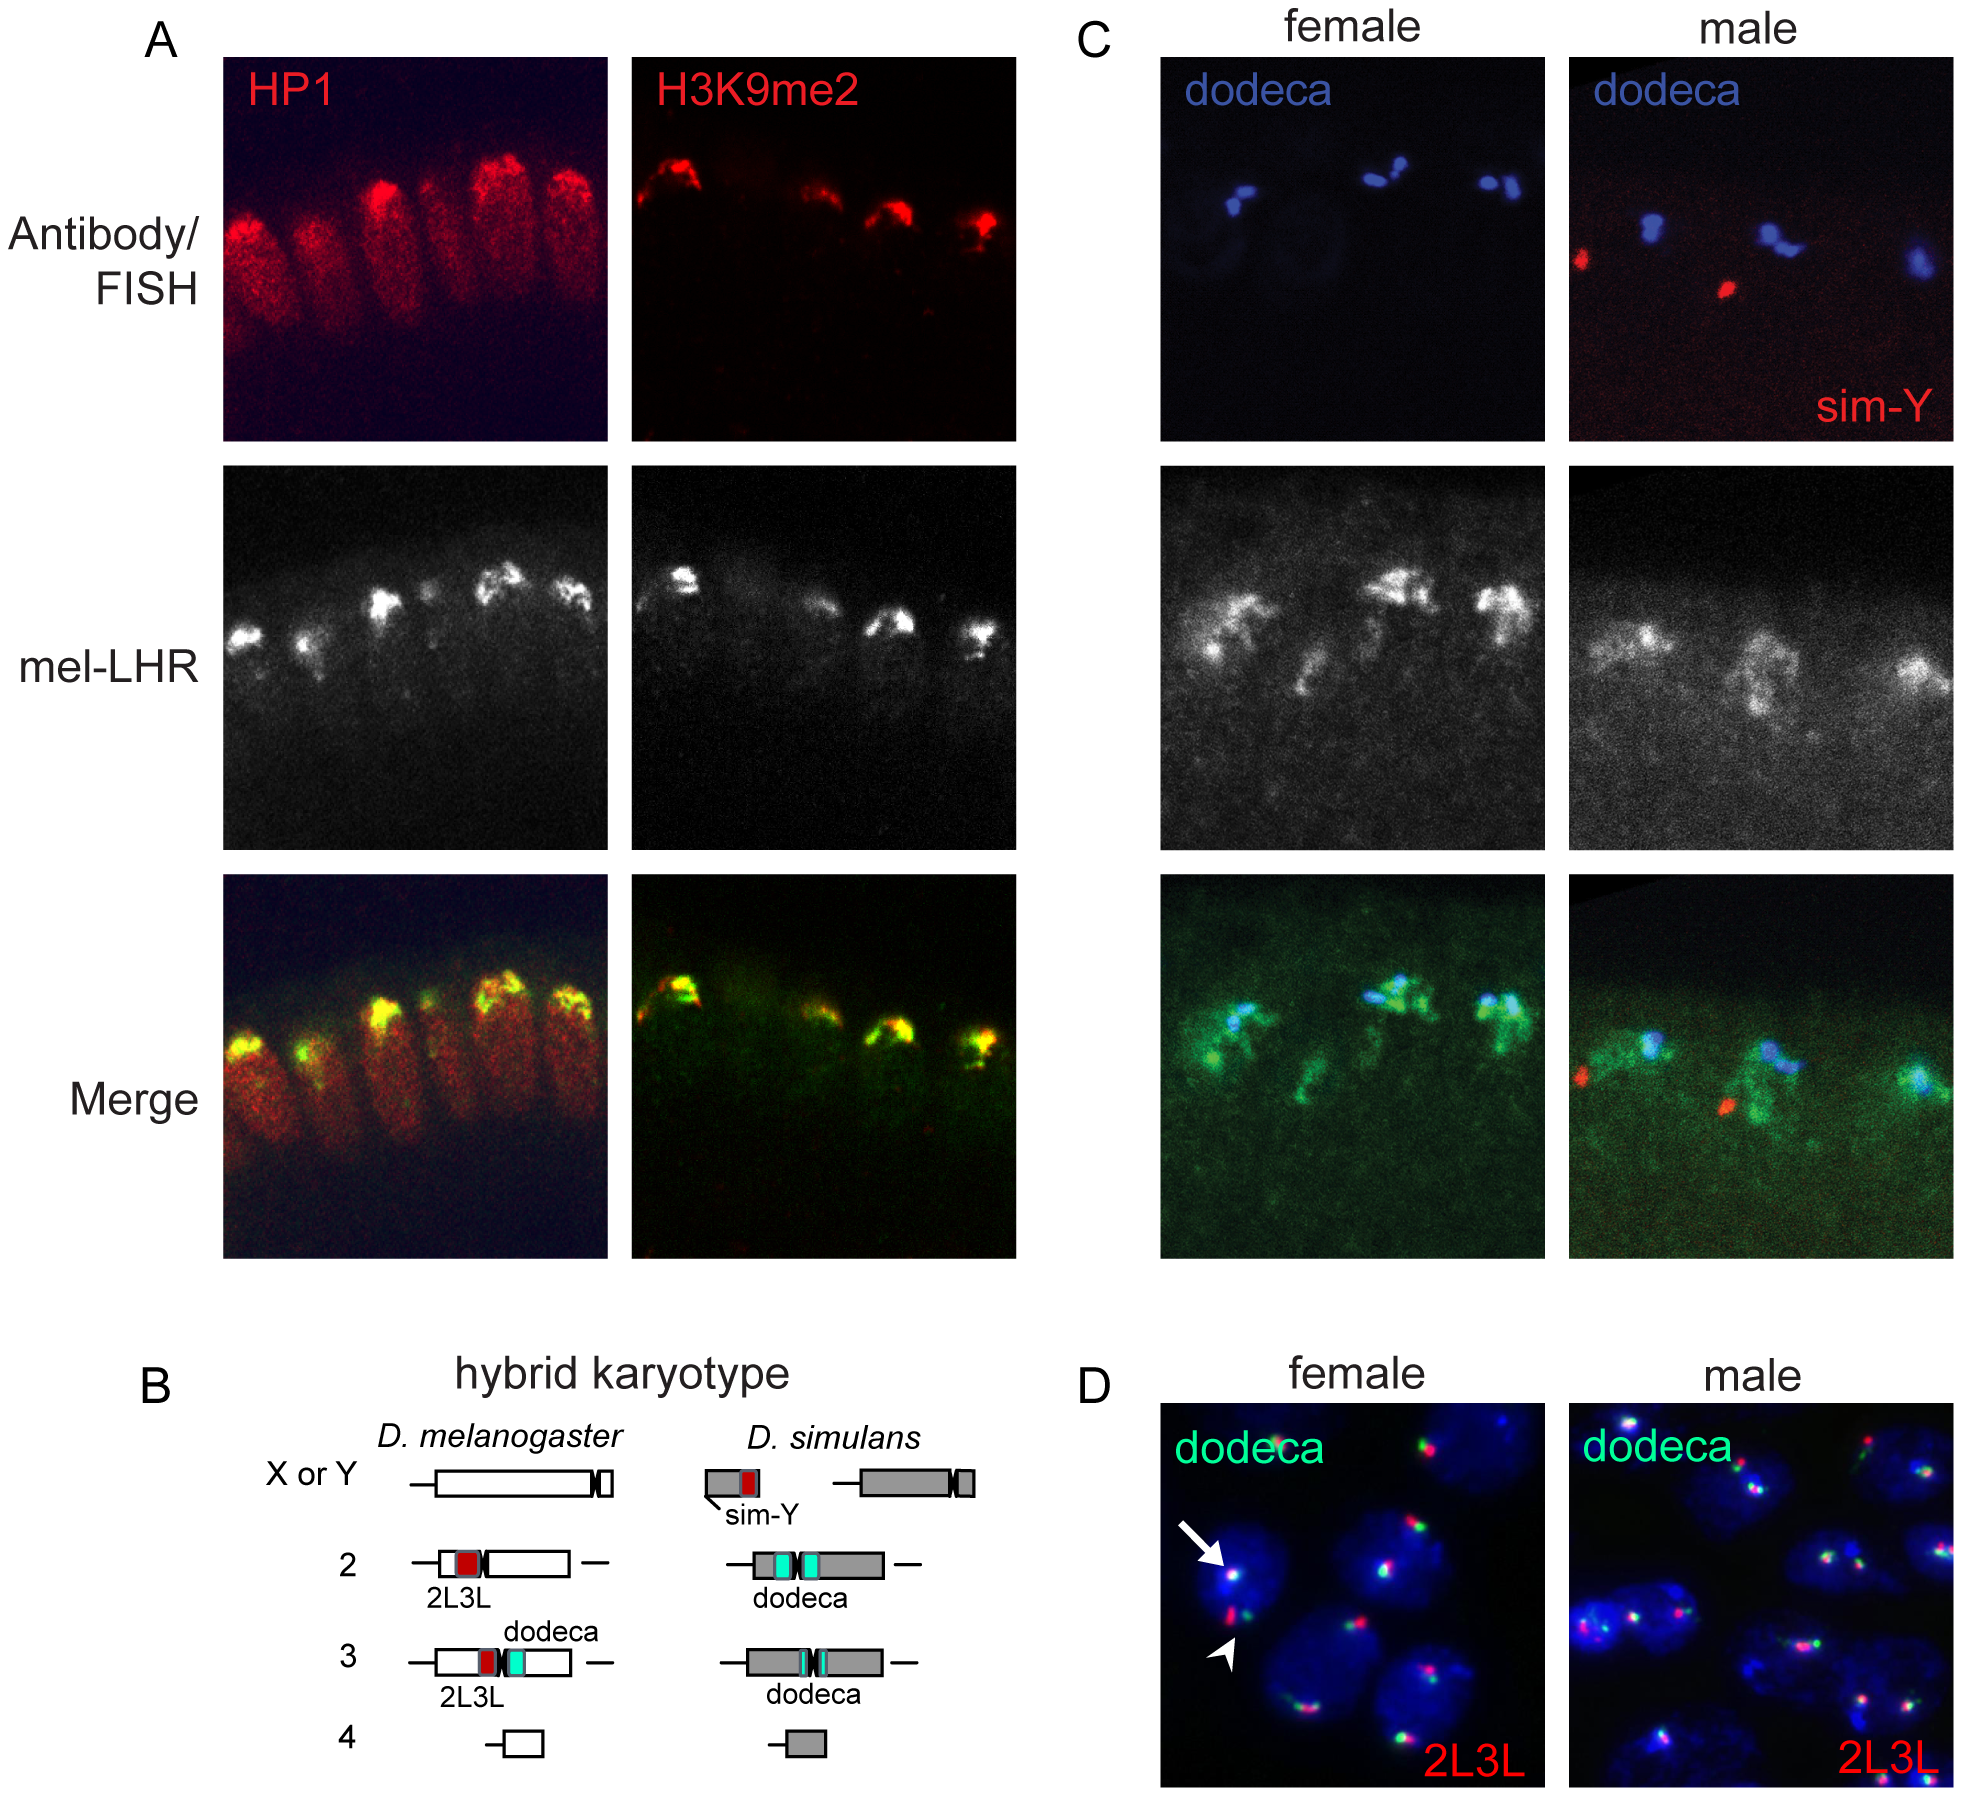 Normal LHR localization and organization of heterochromatin in hybrids.